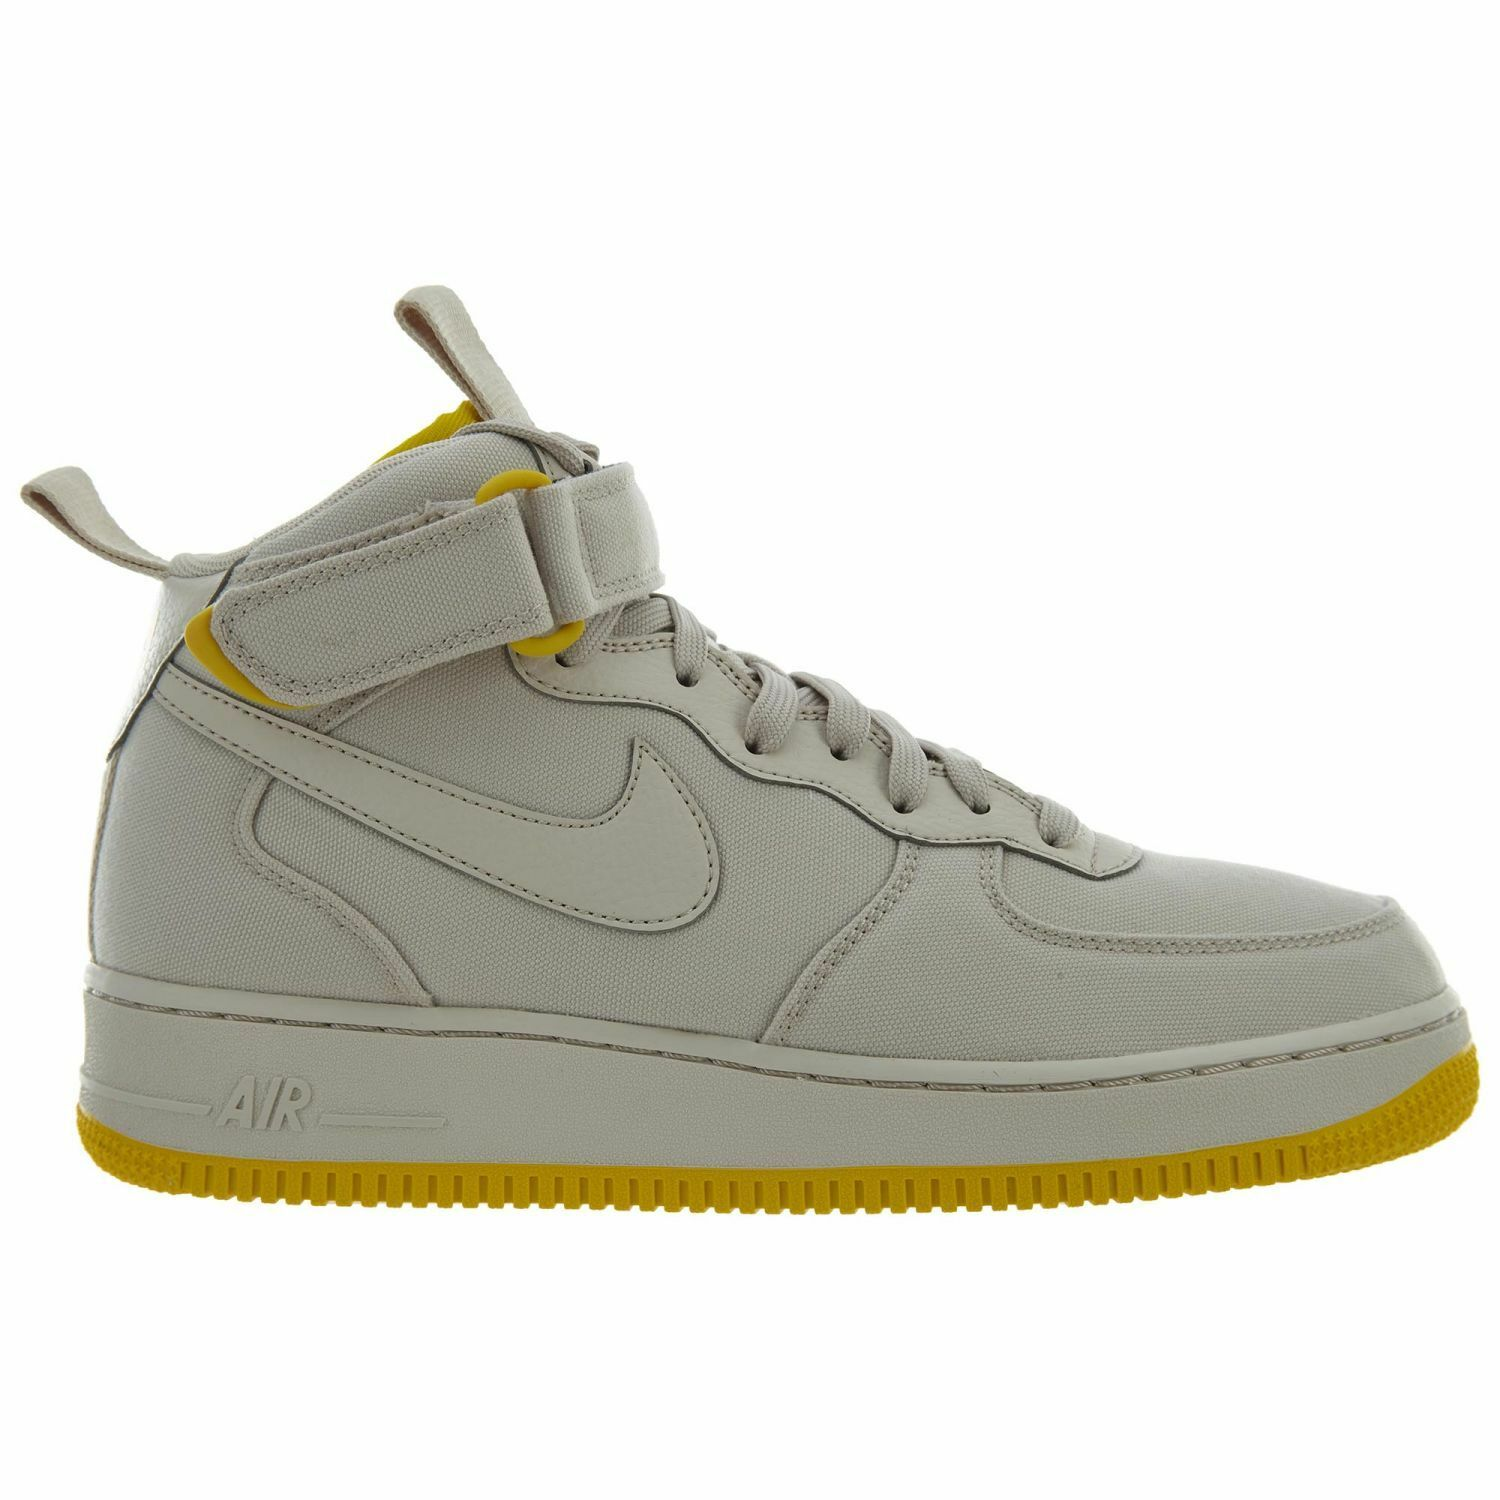 Nike Air Force 1 Mid Canvas Mens AH6770-002 Desert Sand Sulfur shoes Size 11